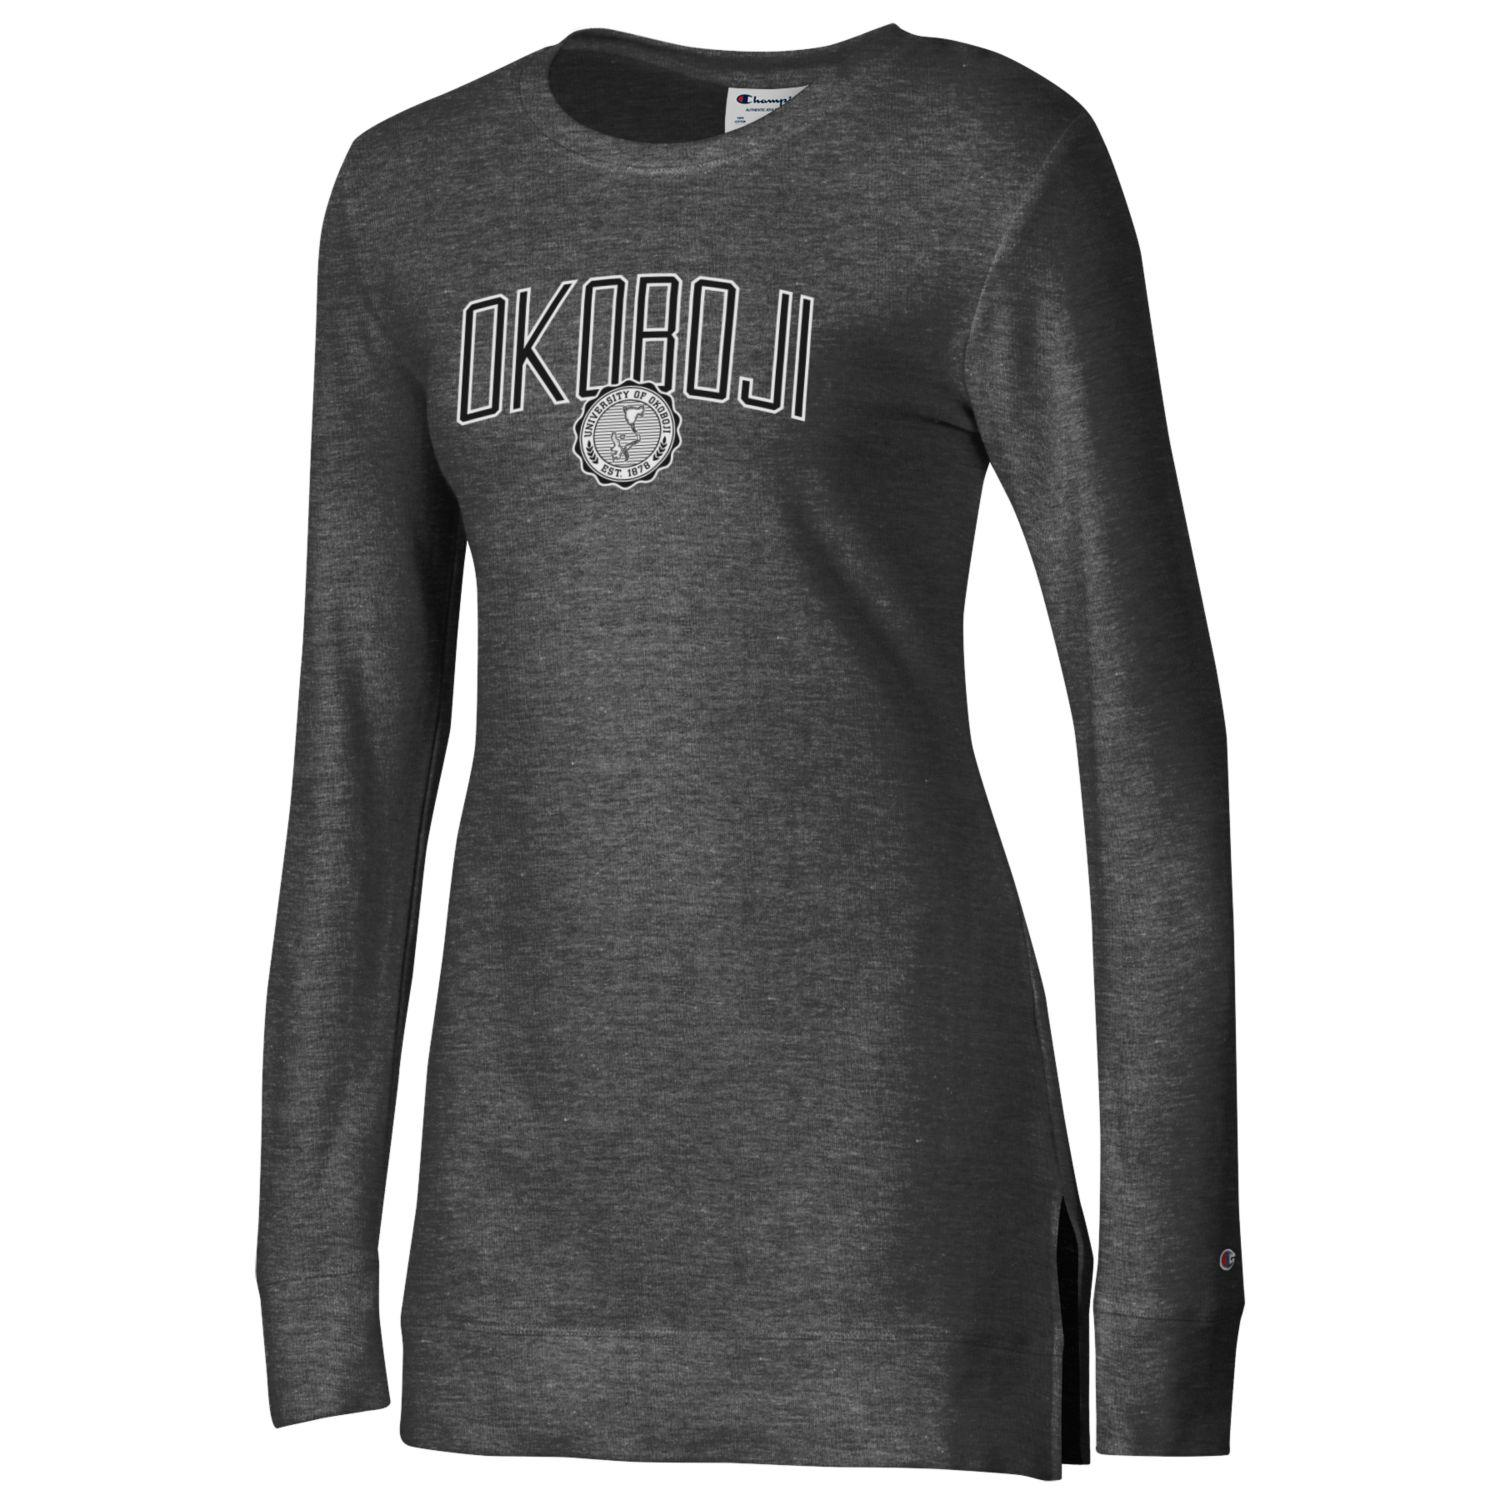 OKOBOJI WOMEN'S UNIVERSITY LOUNGE TUNIC - GRANITE HEATHER